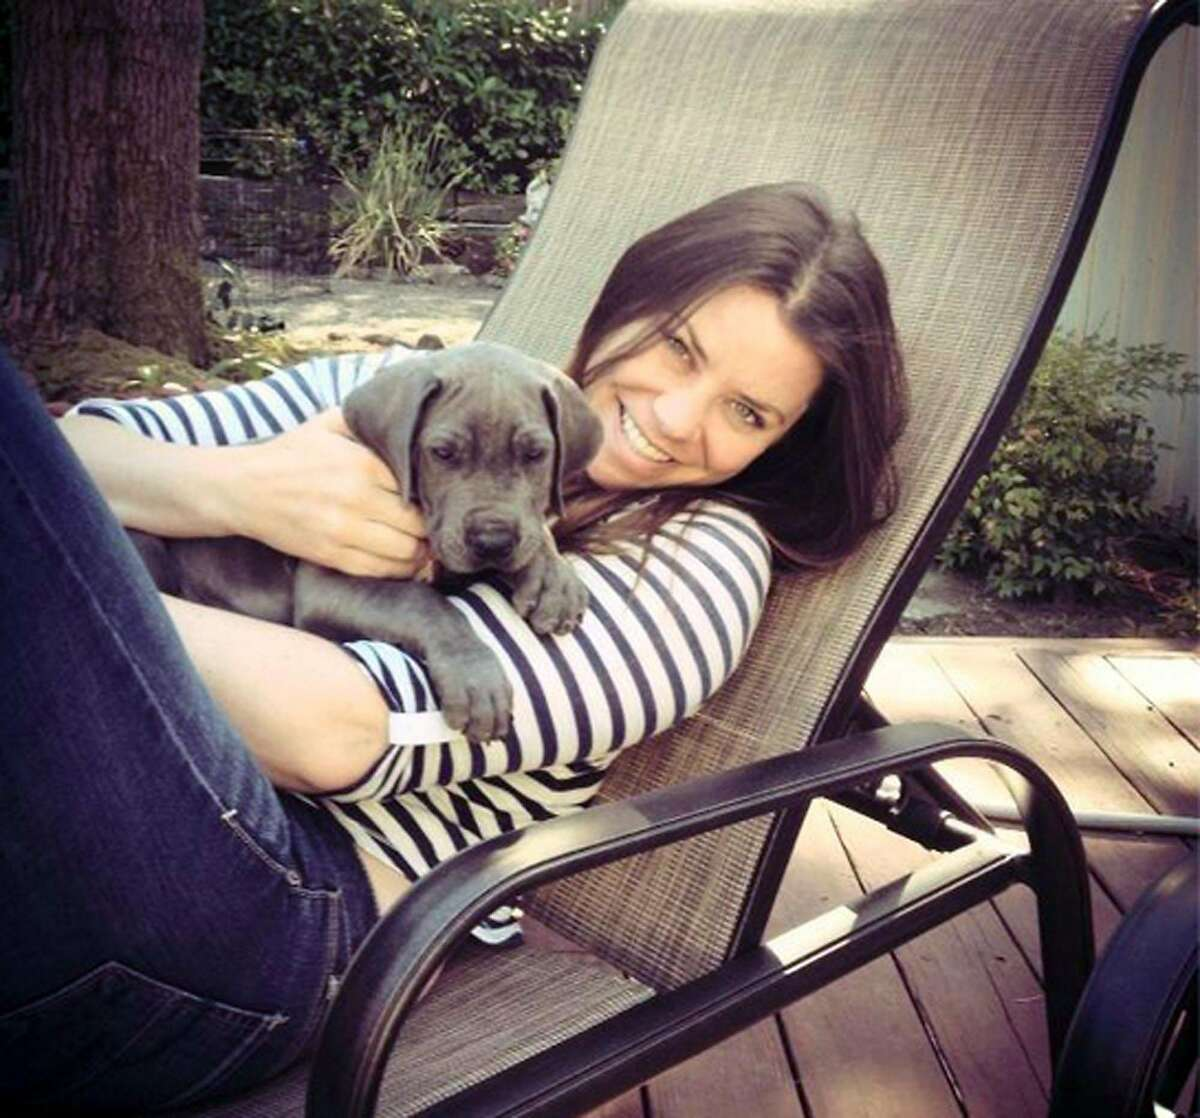 This undated file photo provided by the Maynard family shows Brittany Maynard, a terminally ill woman who decided to end her life early under an Oregon law. She died Nov. 1, 2014. The Catholic Church has called Maynard's decision to die